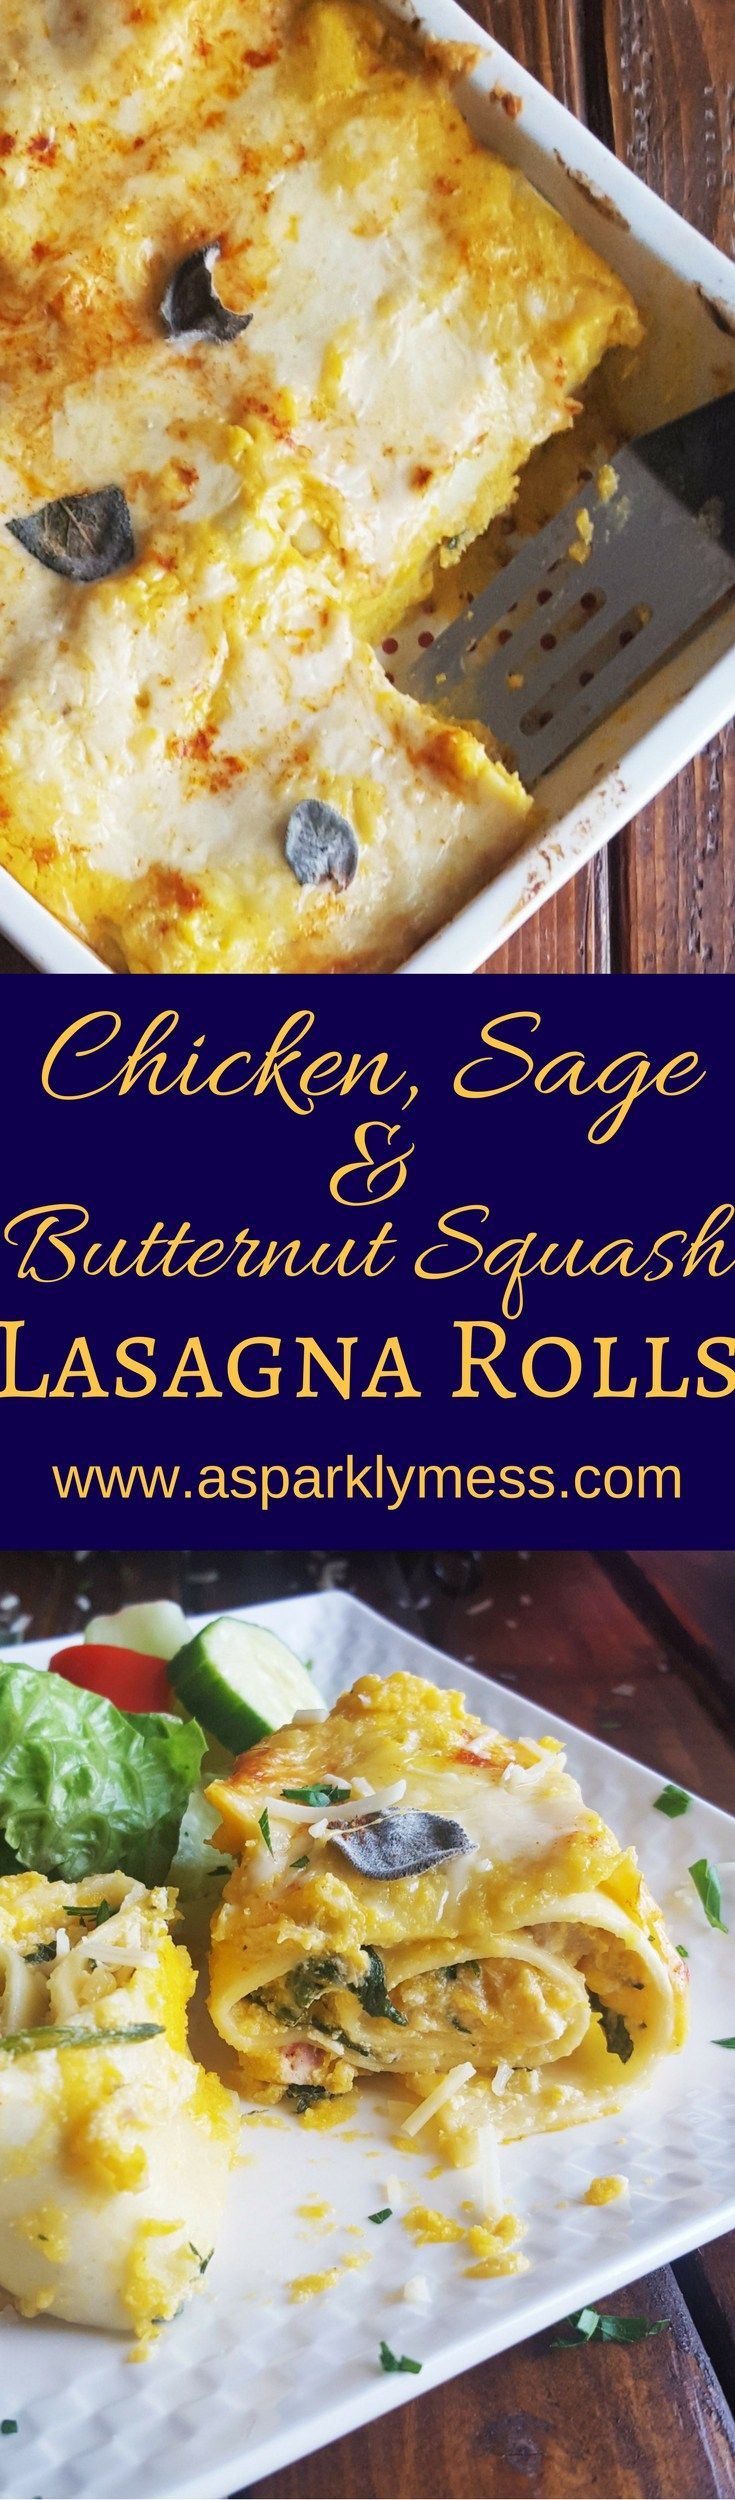 This Butternut Squash & Chicken Lasagna Rolls recipe is a little twist on a classic. Tender noodles wrapped around a creamy flavorful filling and baked in a luxurious butternut squash sauce. Trust me – you want this in your life.